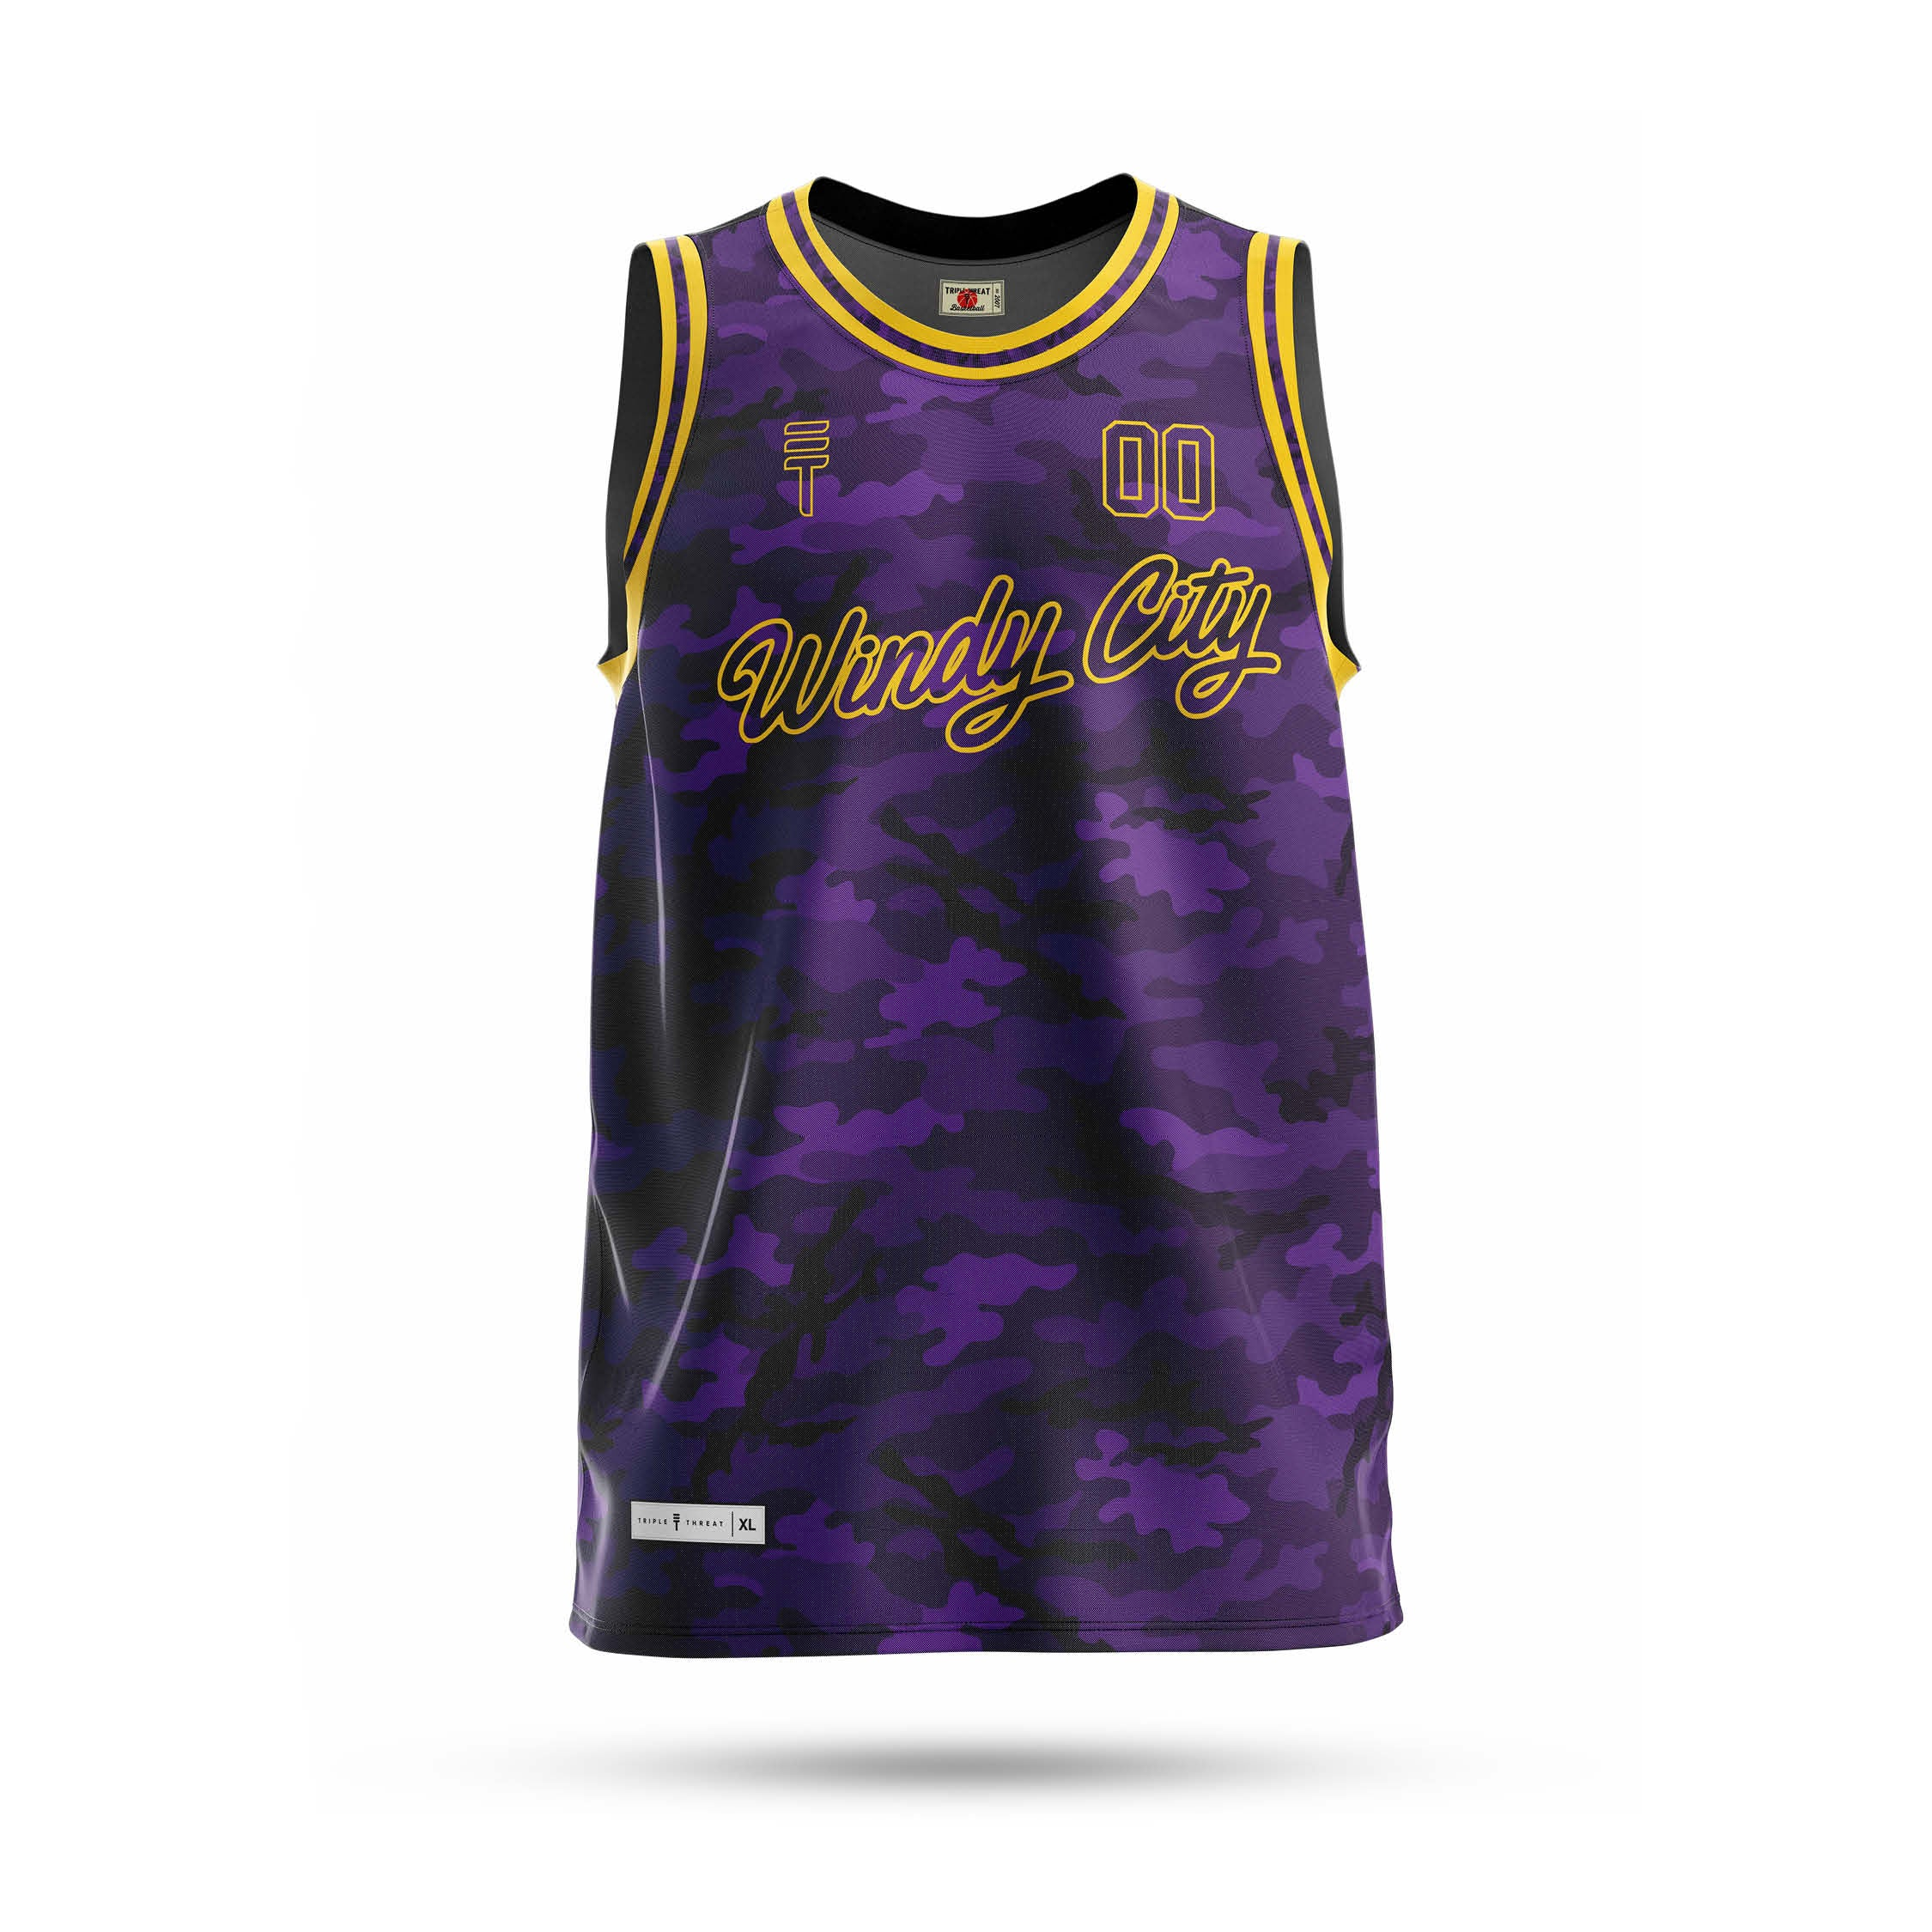 Windy City Custom singlet - Purple & Yellow